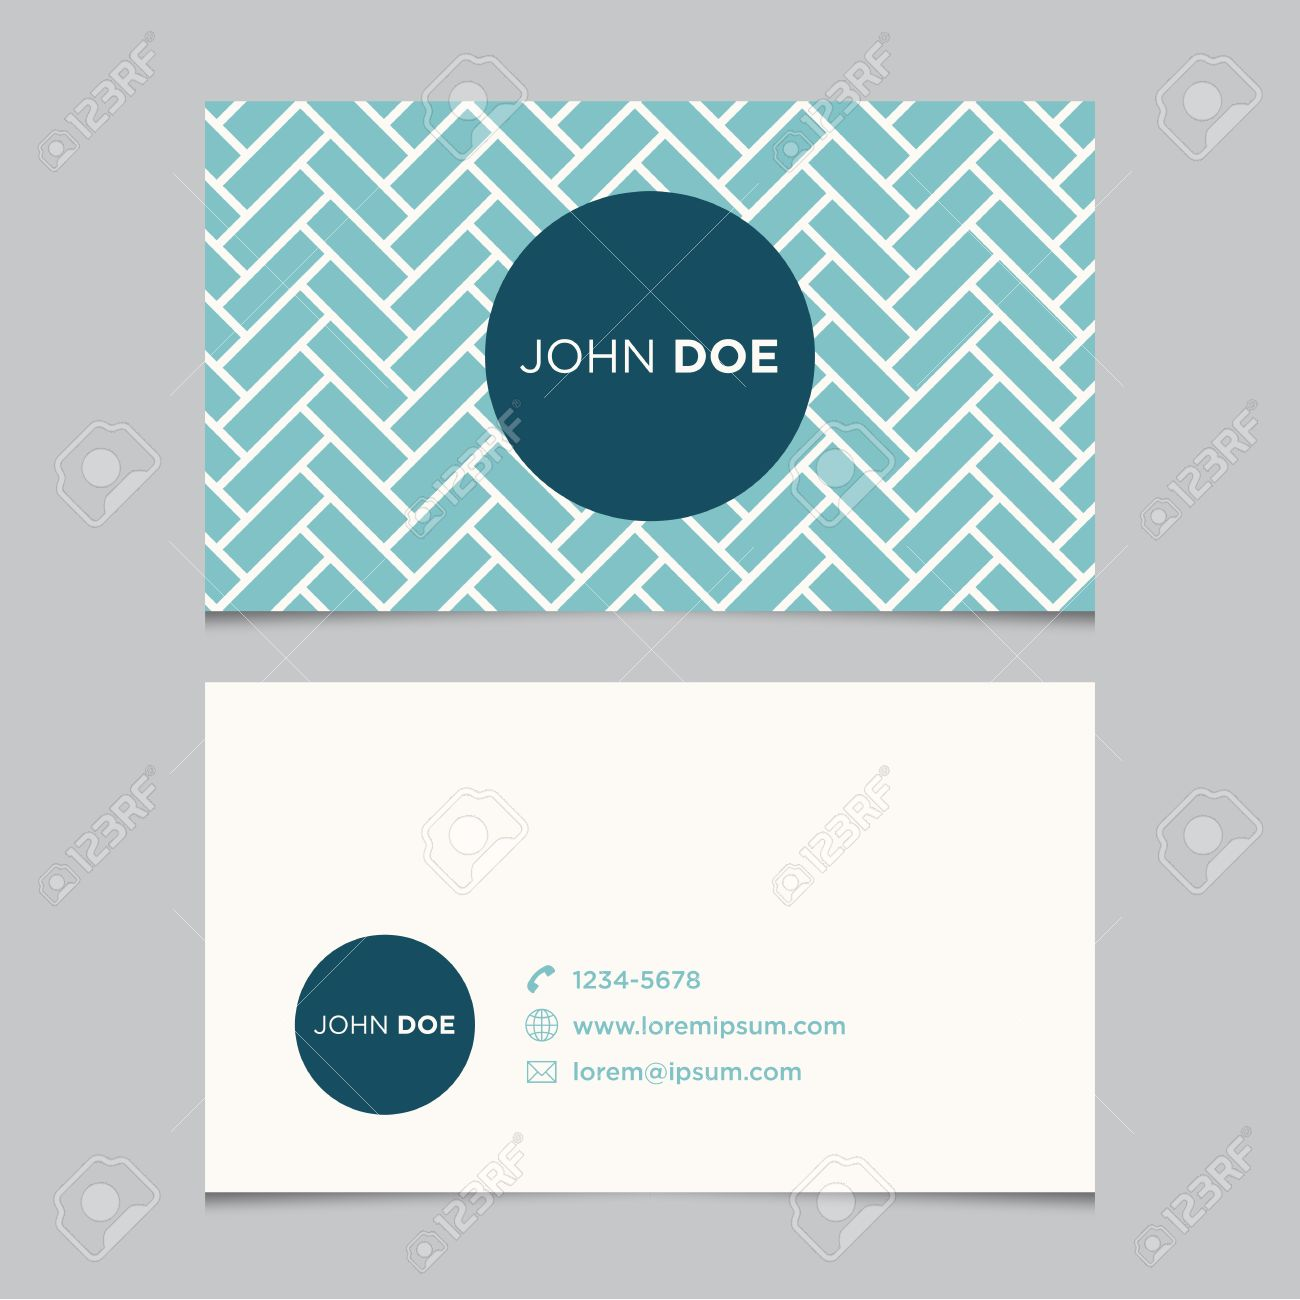 Business Card Template With Background Pattern Royalty Free Cliparts ...